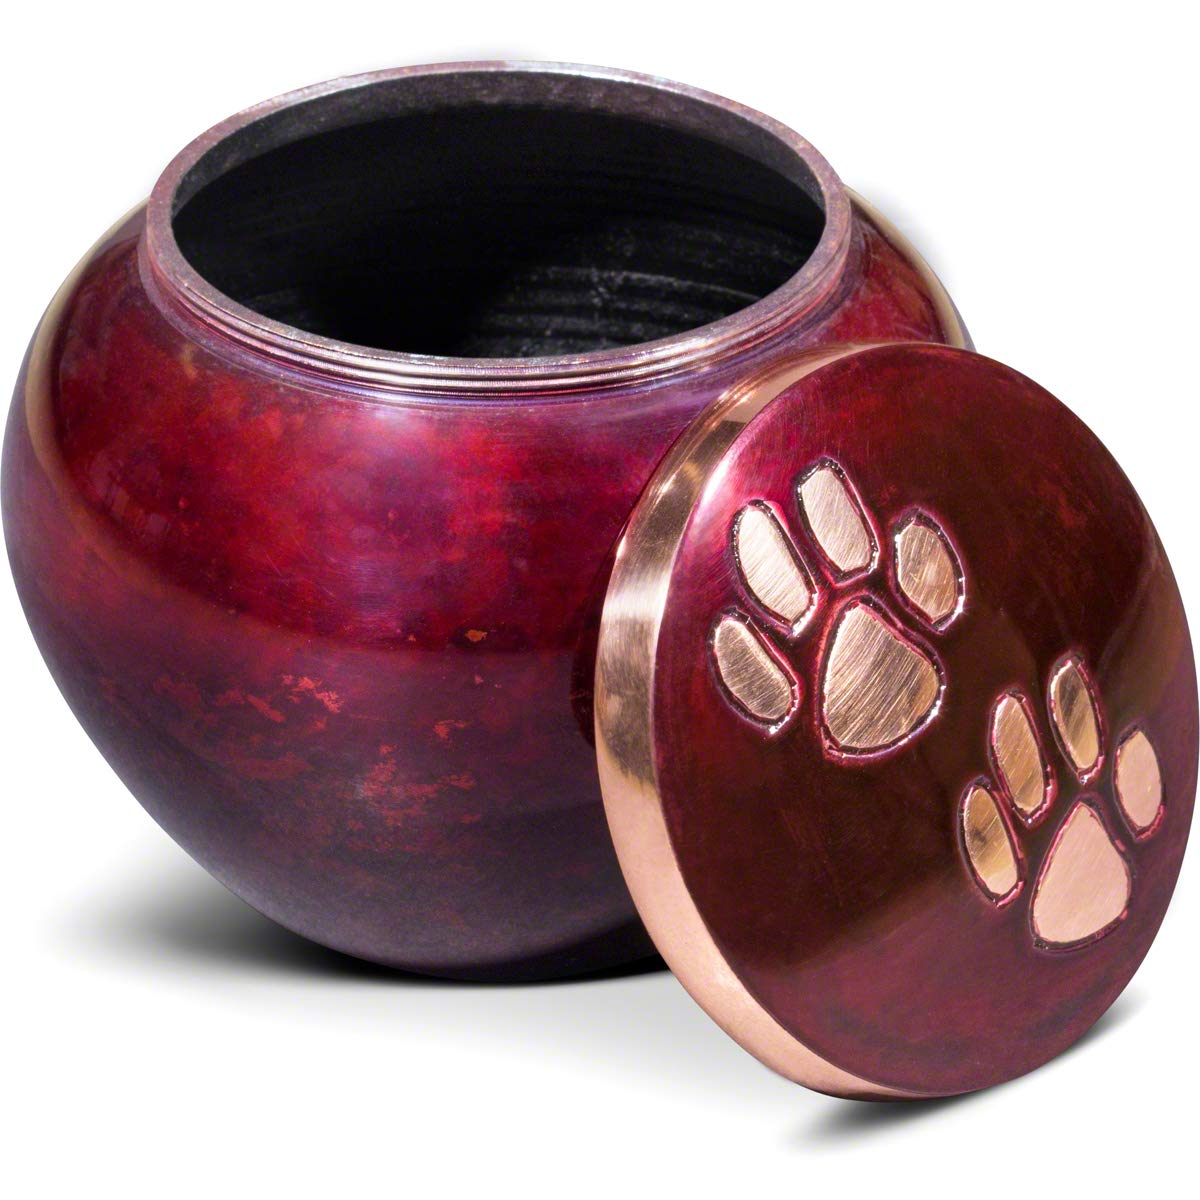 Best Friend Services Dog and Cat Pet Cremation Urn, The Mia Series with Raku Color Finish and Hand Carved Brass Paws, Medium Size to Memorialize Pets up to 40lbs by Best Friend Services